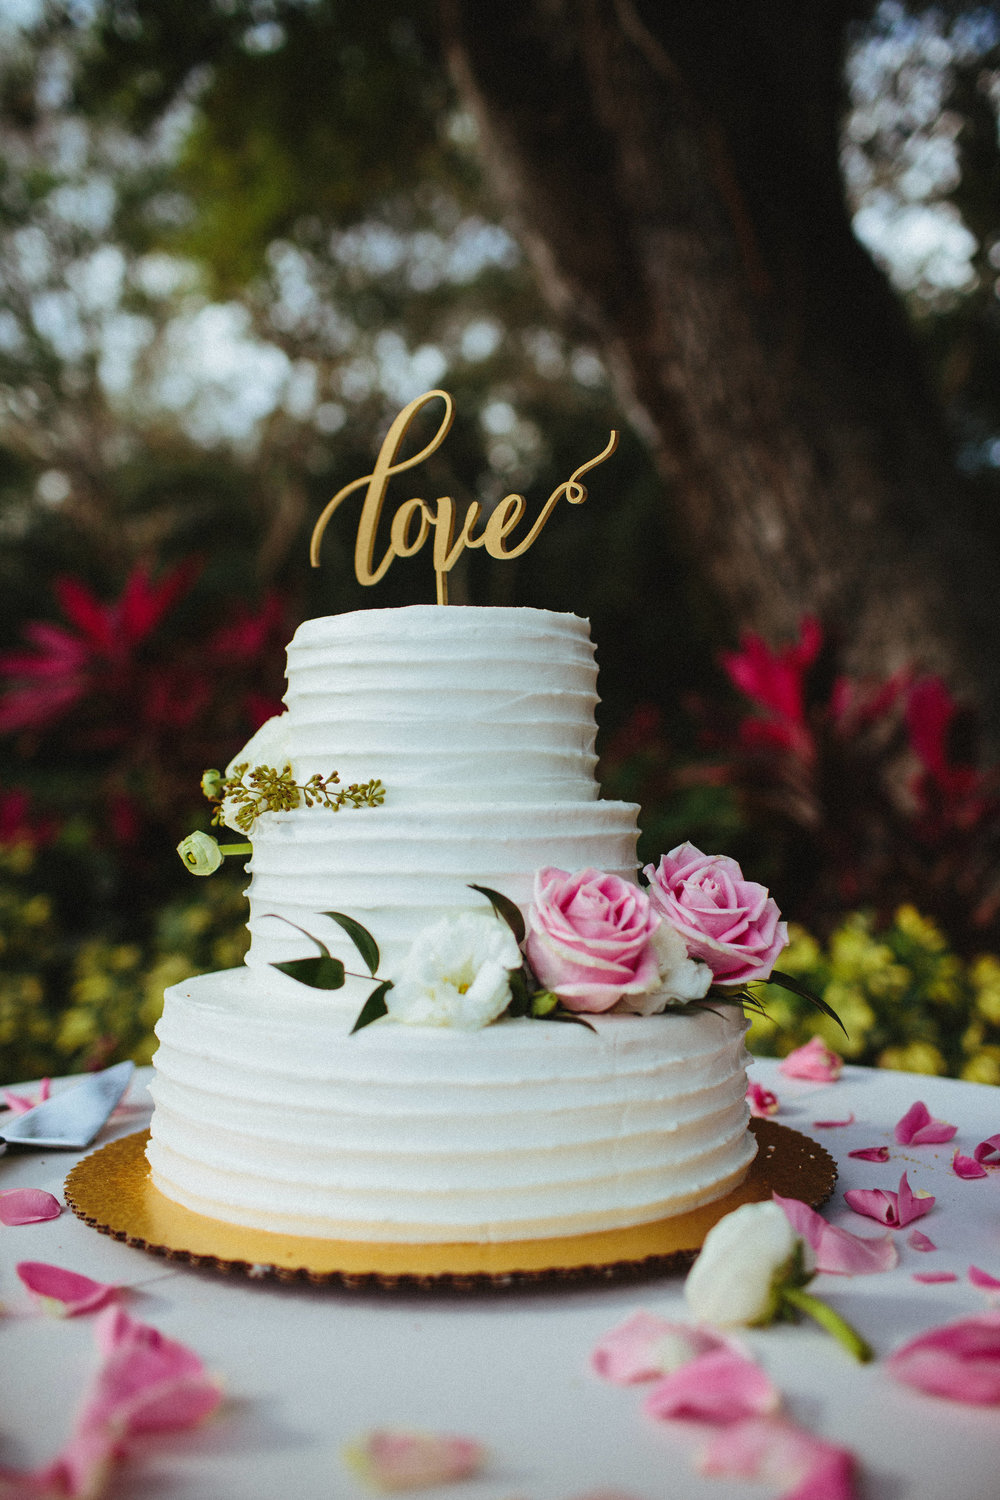 Wedding Cake by Ana Paz